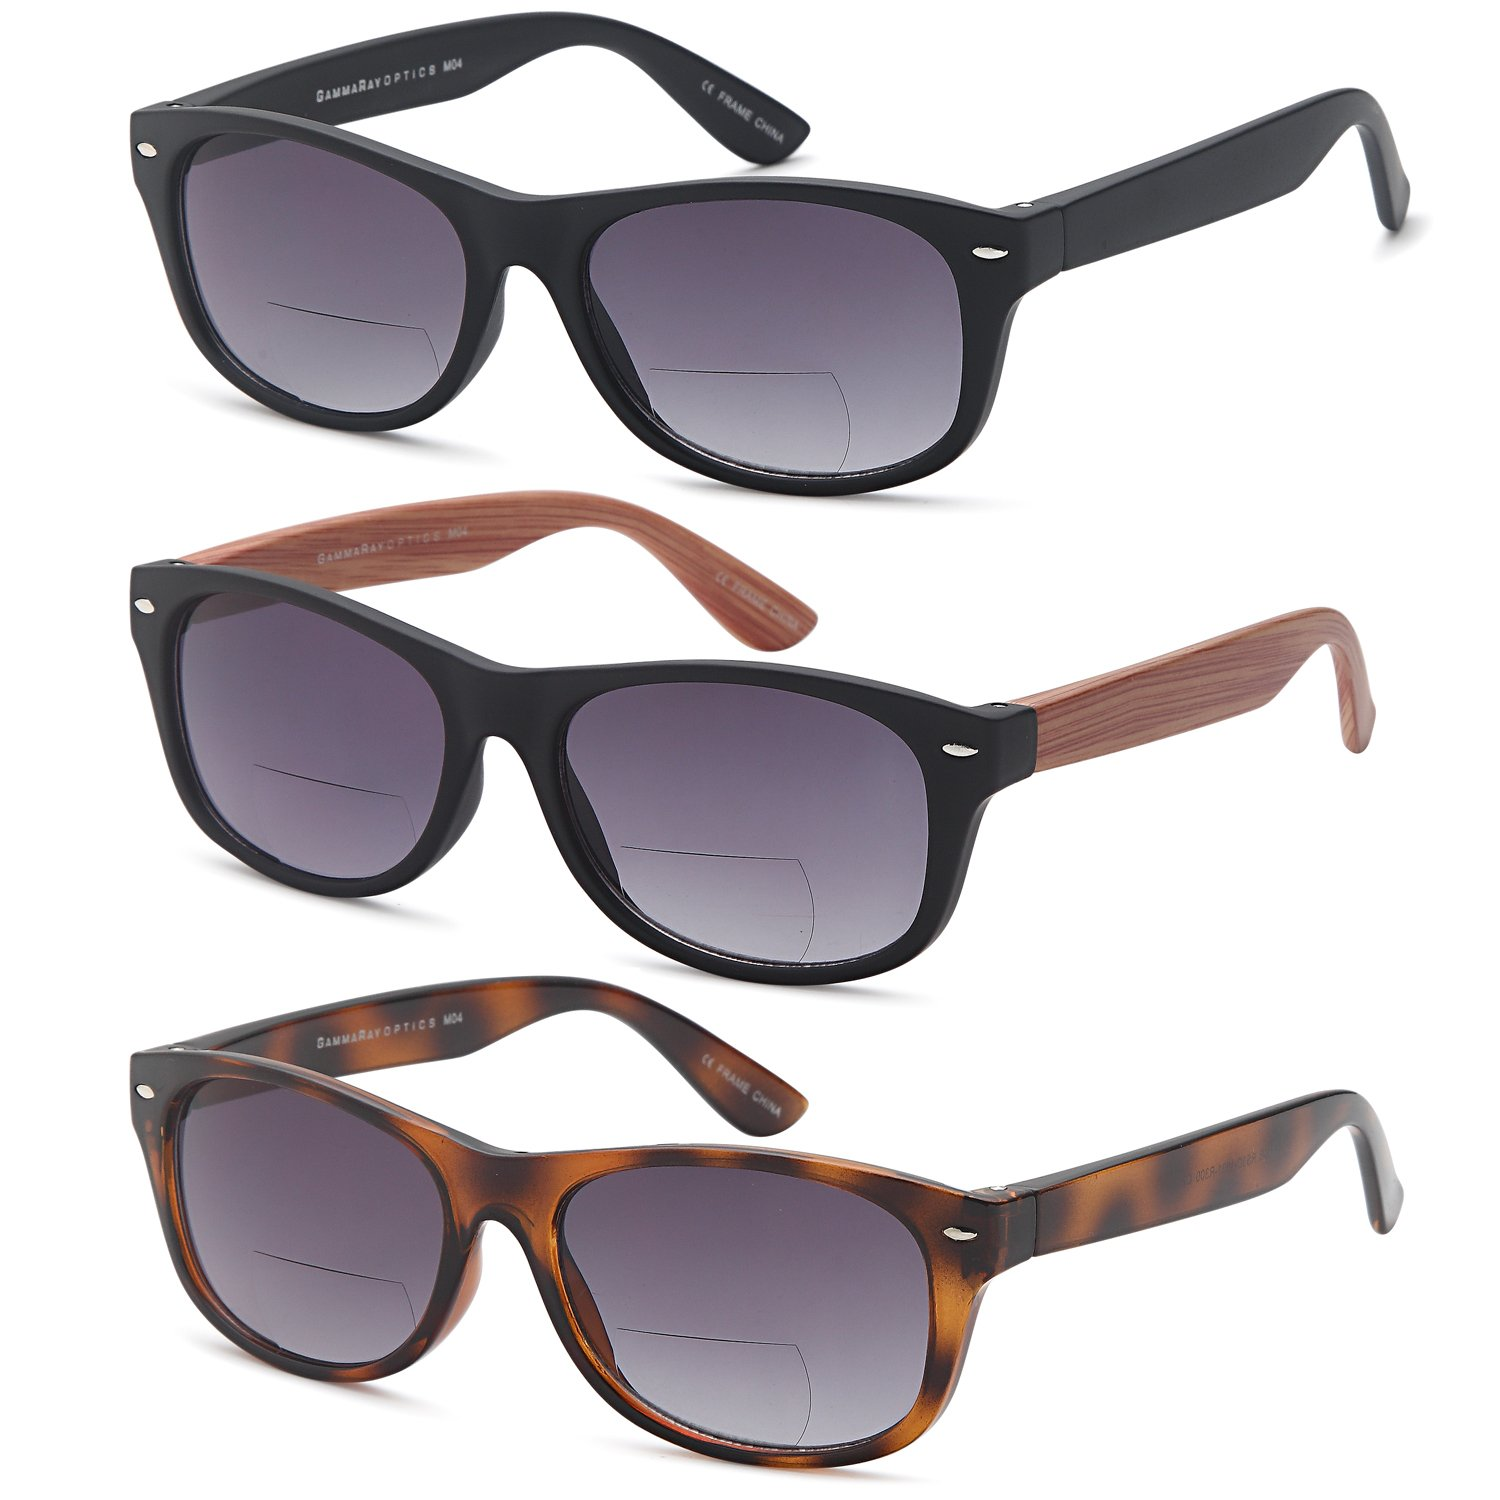 GAMMA RAY 3 Pairs Bifocal Gradient Sunglasses Readers Reading Glasses - Choose Your Magnification